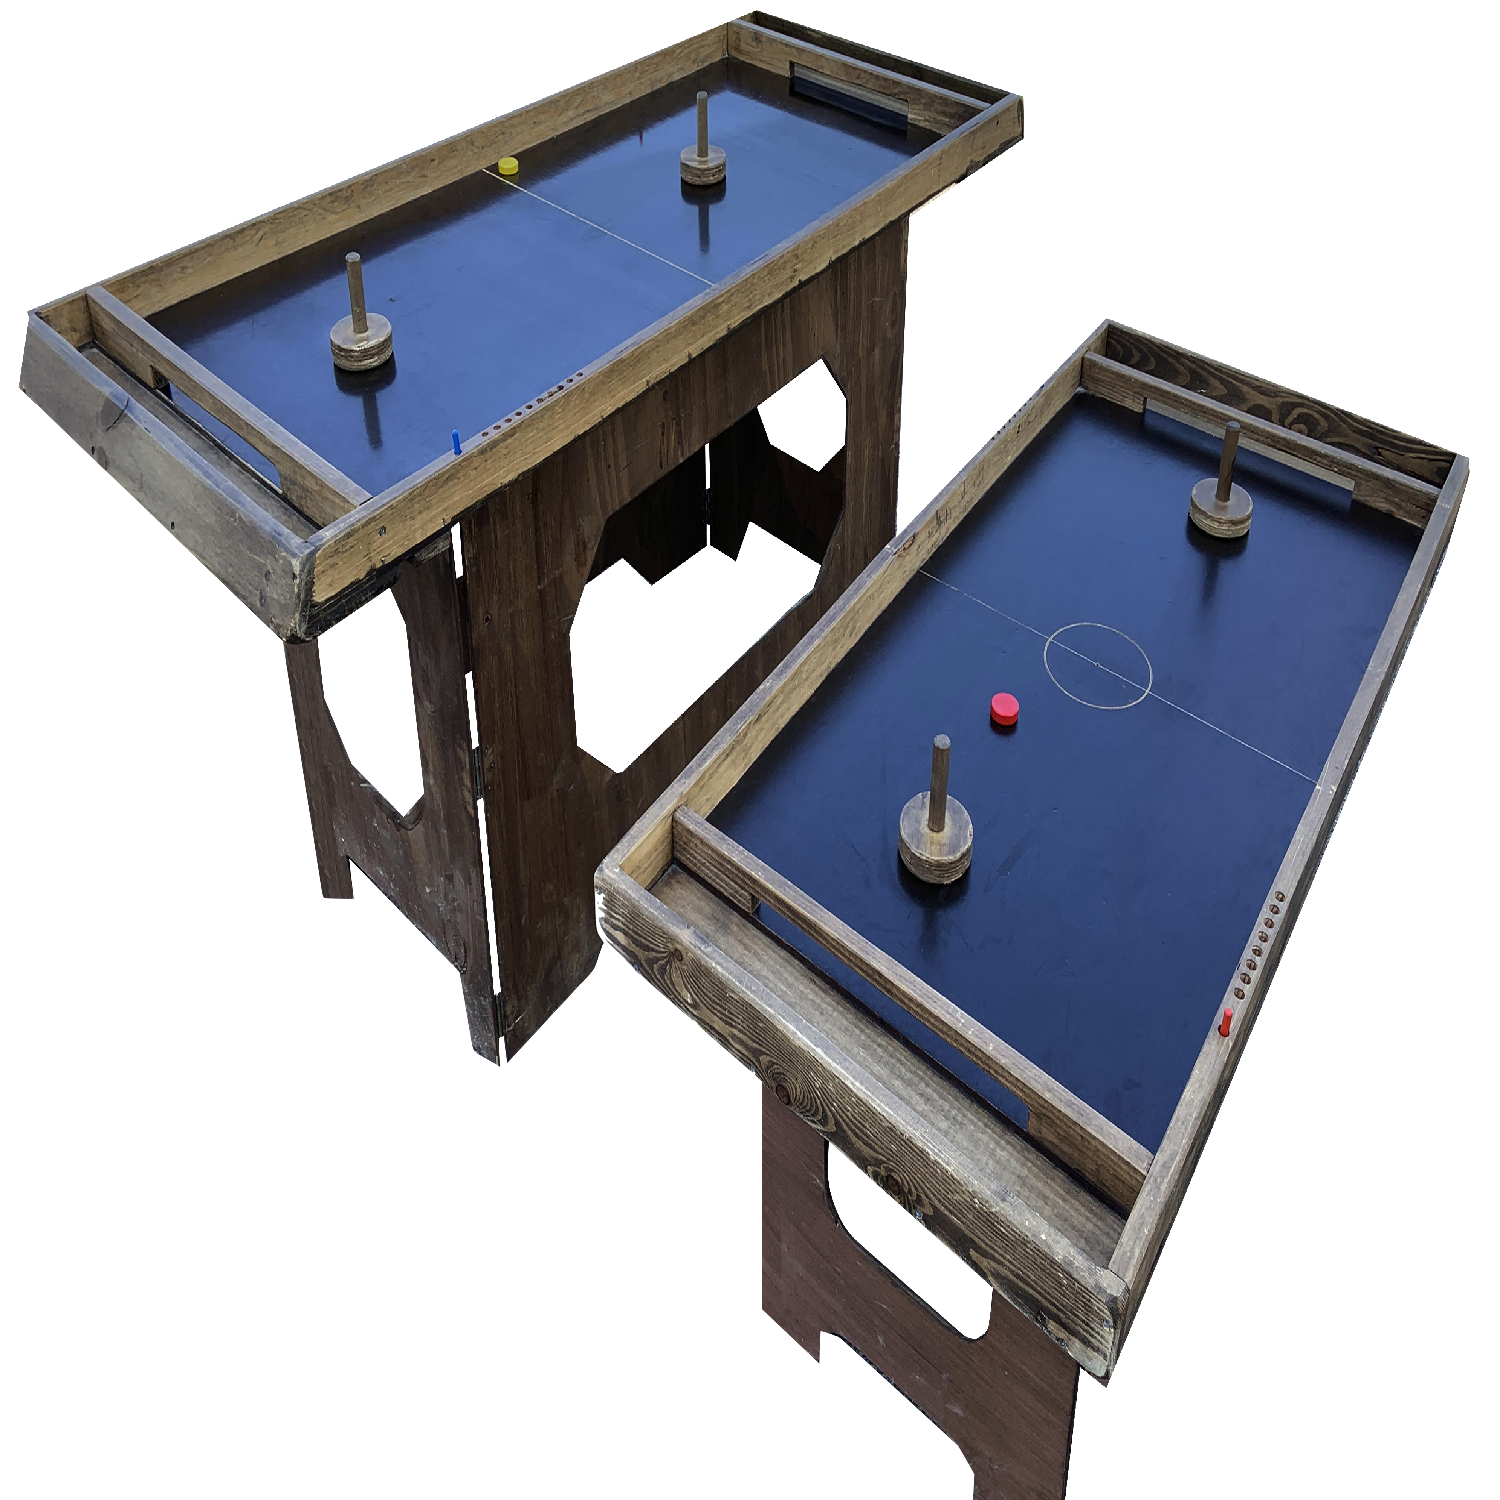 LA CASE DU JEU : BILLARD HOCKEY